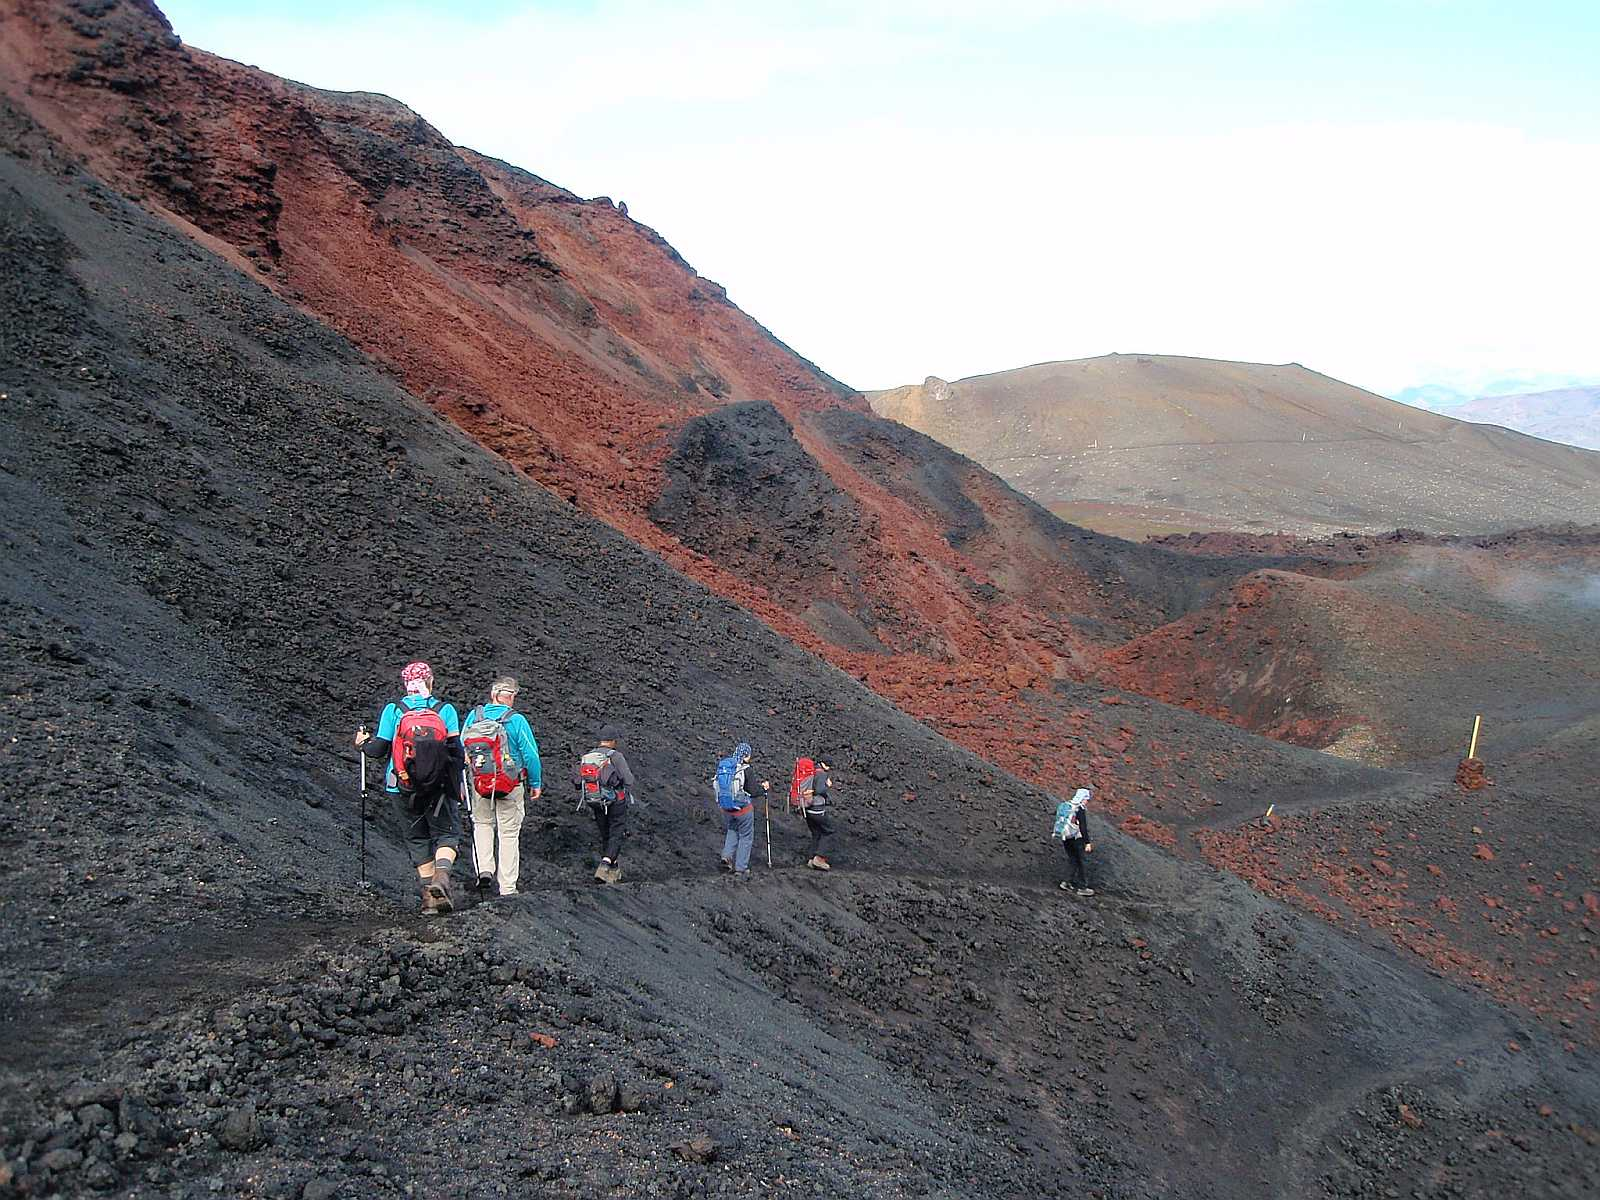 Hikers go through the fresh lavafield